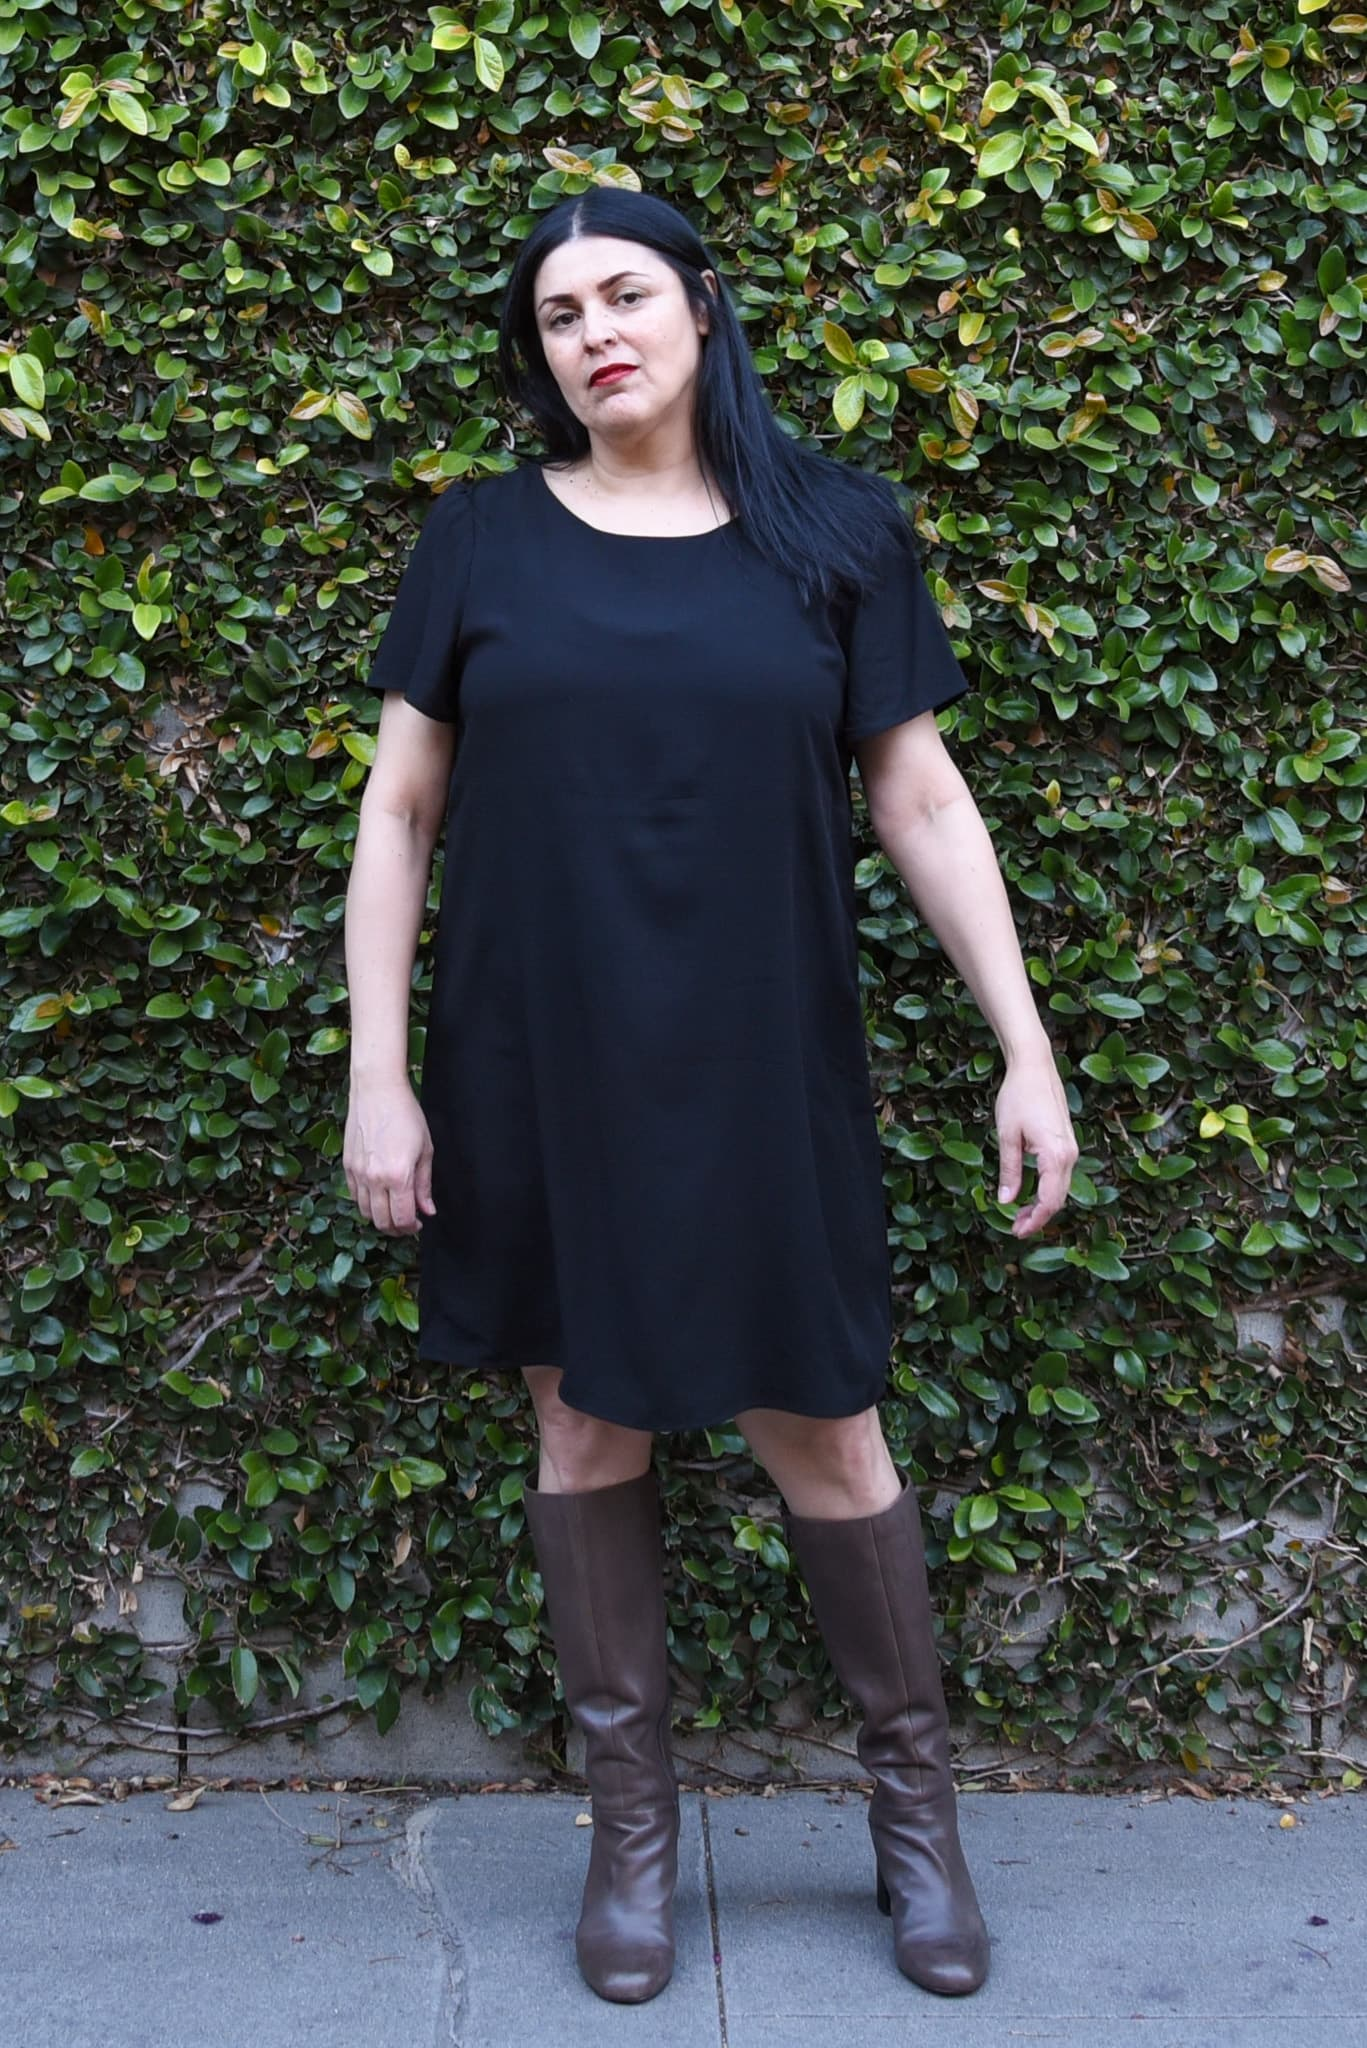 Image of woman with long black hair and red lipstick standing in front of a wall covered in wines wearing a black rayon dress and gray boots